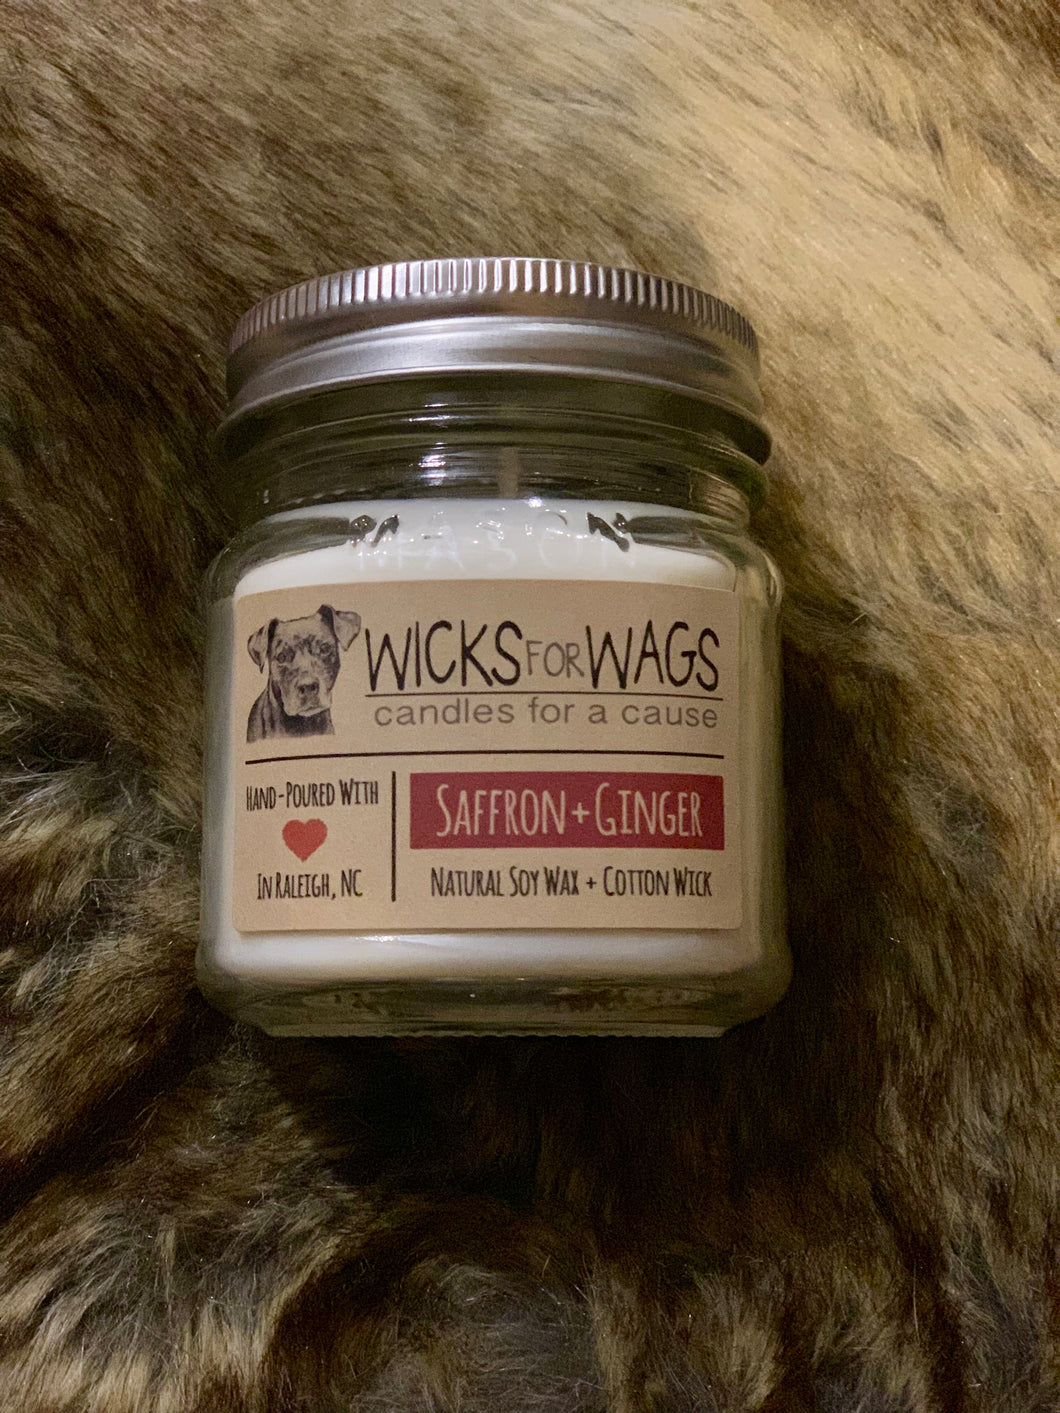 Wicks For Wags - Saffron + Ginger